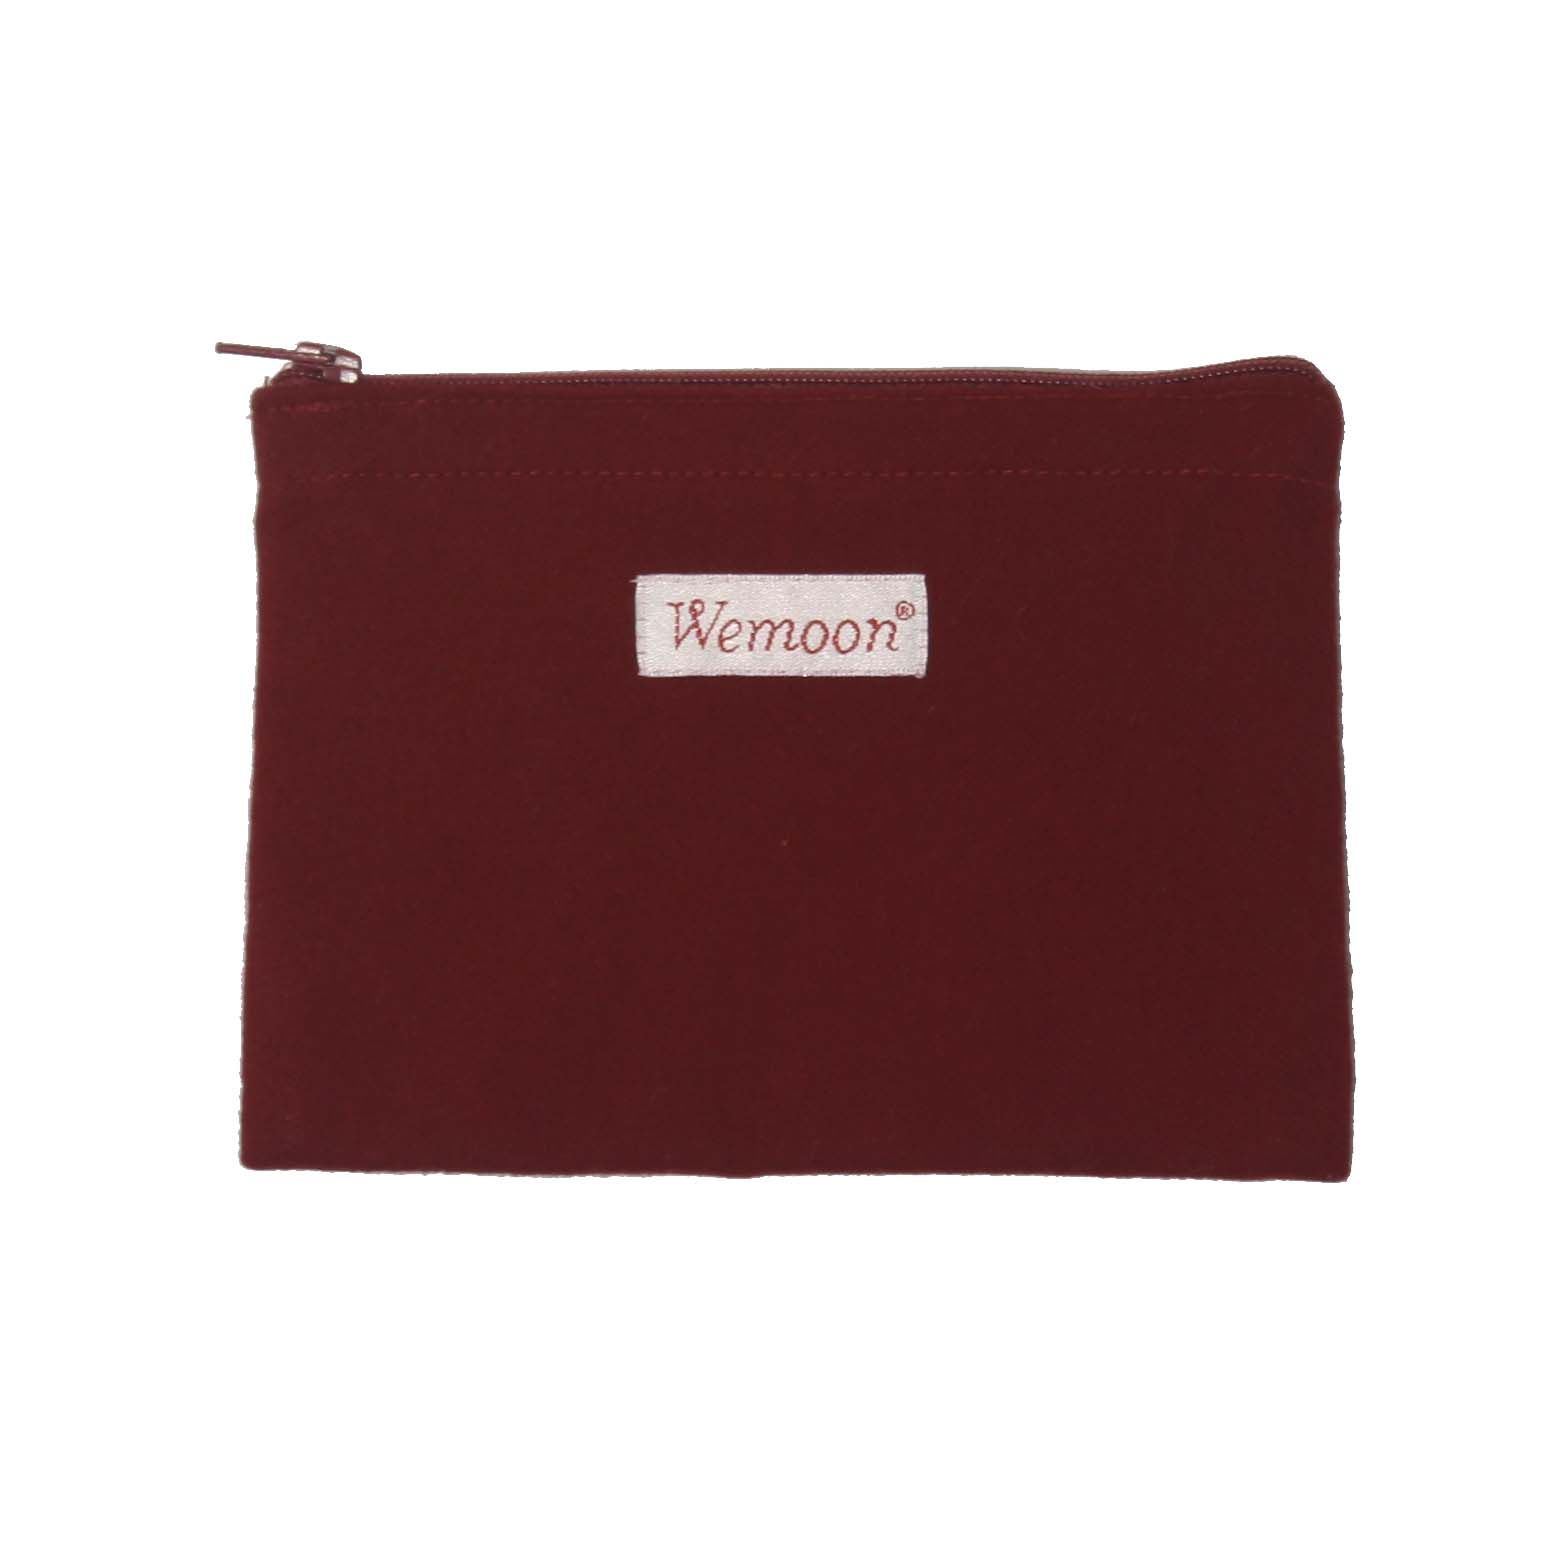 Slimline Moonpurse -Ruby